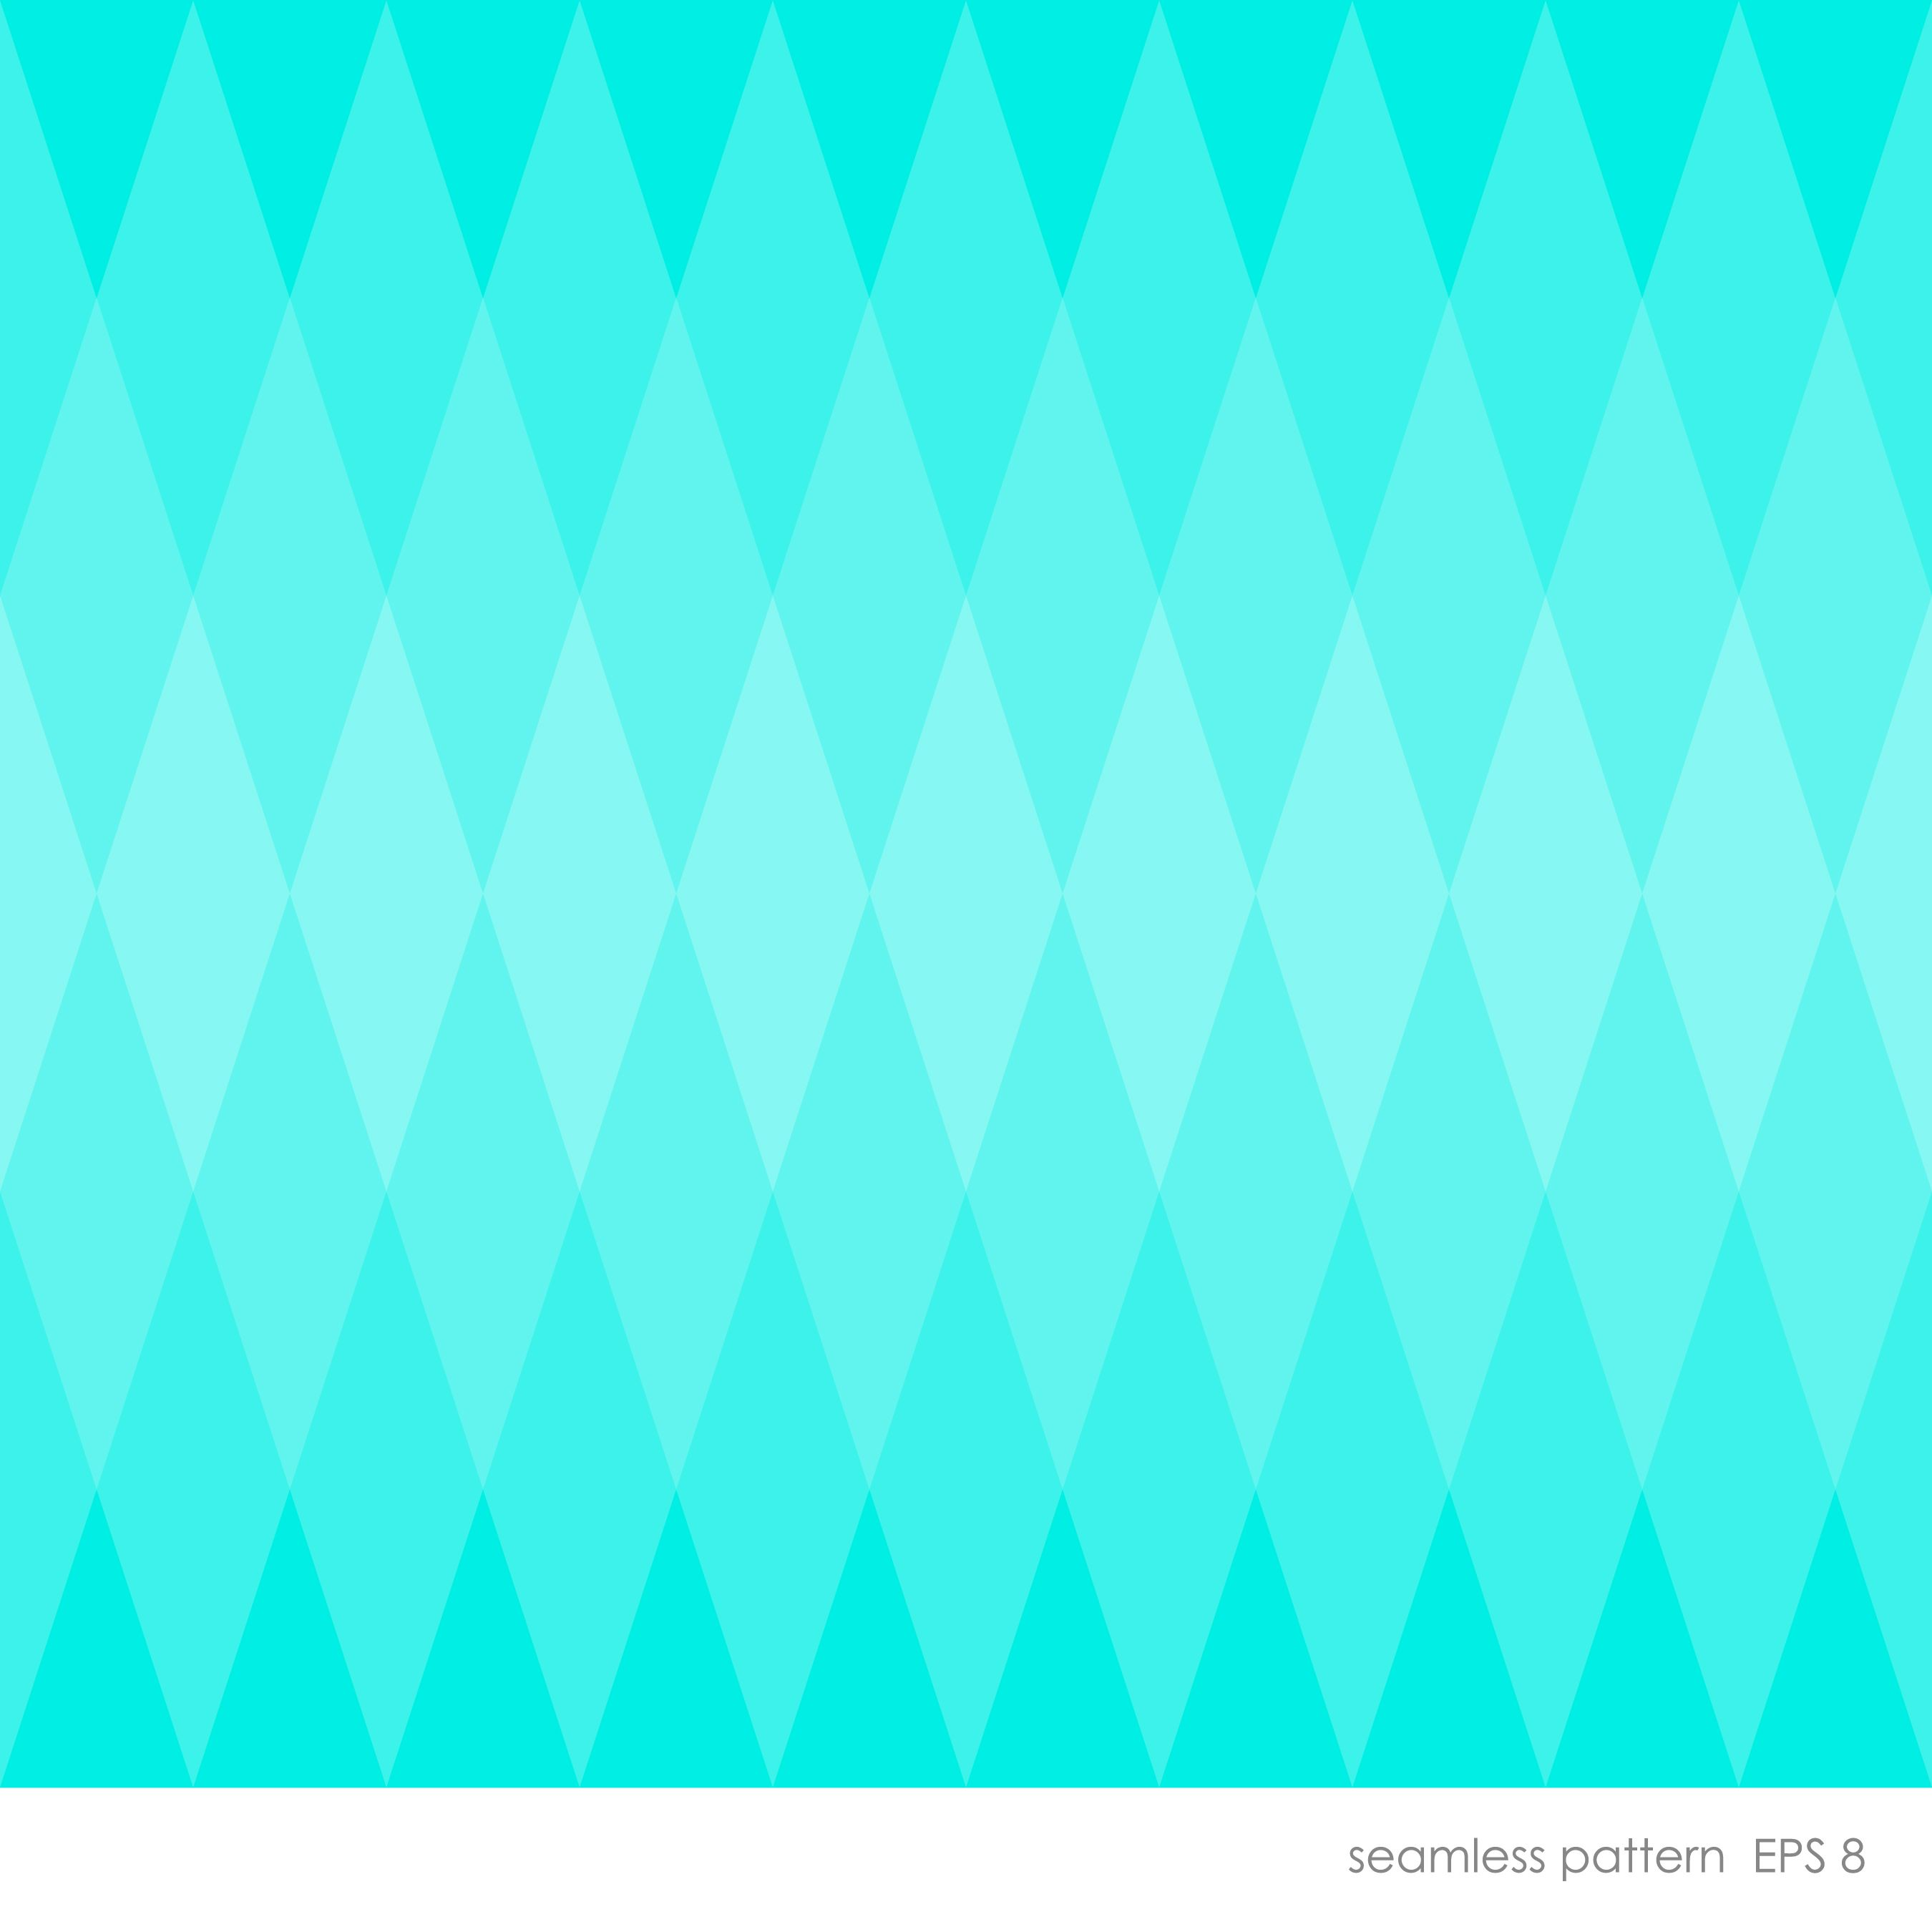 seamless modern geometric pattern simple background of rhombuses In